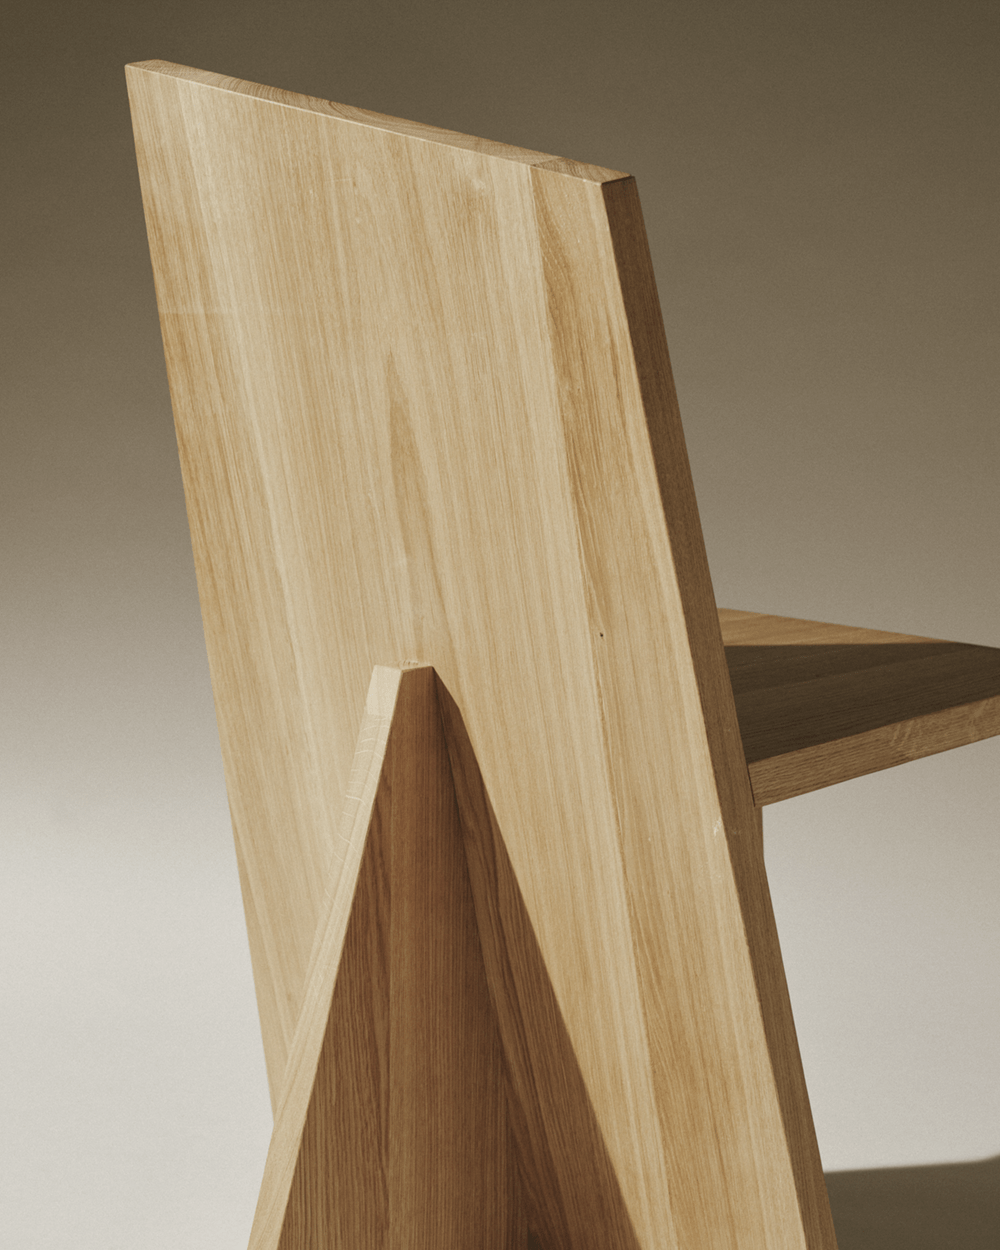 Nazara_Lazaro_Crooked_Dining_Chair_01